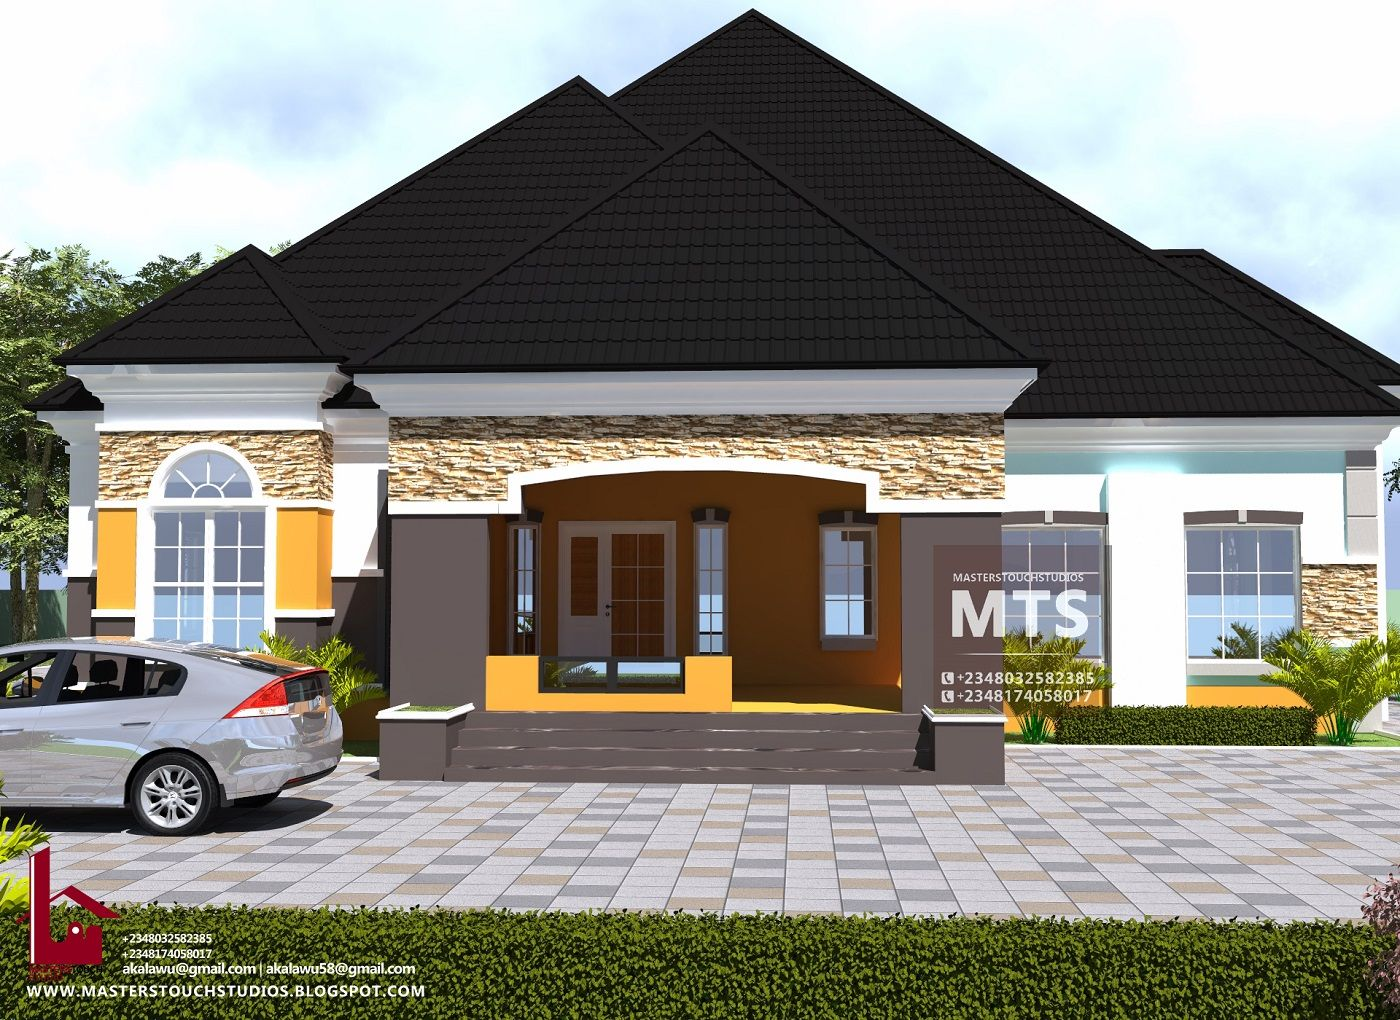 4 Bedroom Bungalow Rf 4021 In 2020 Bungalow House Plans House Plan Gallery House Plans Mansion